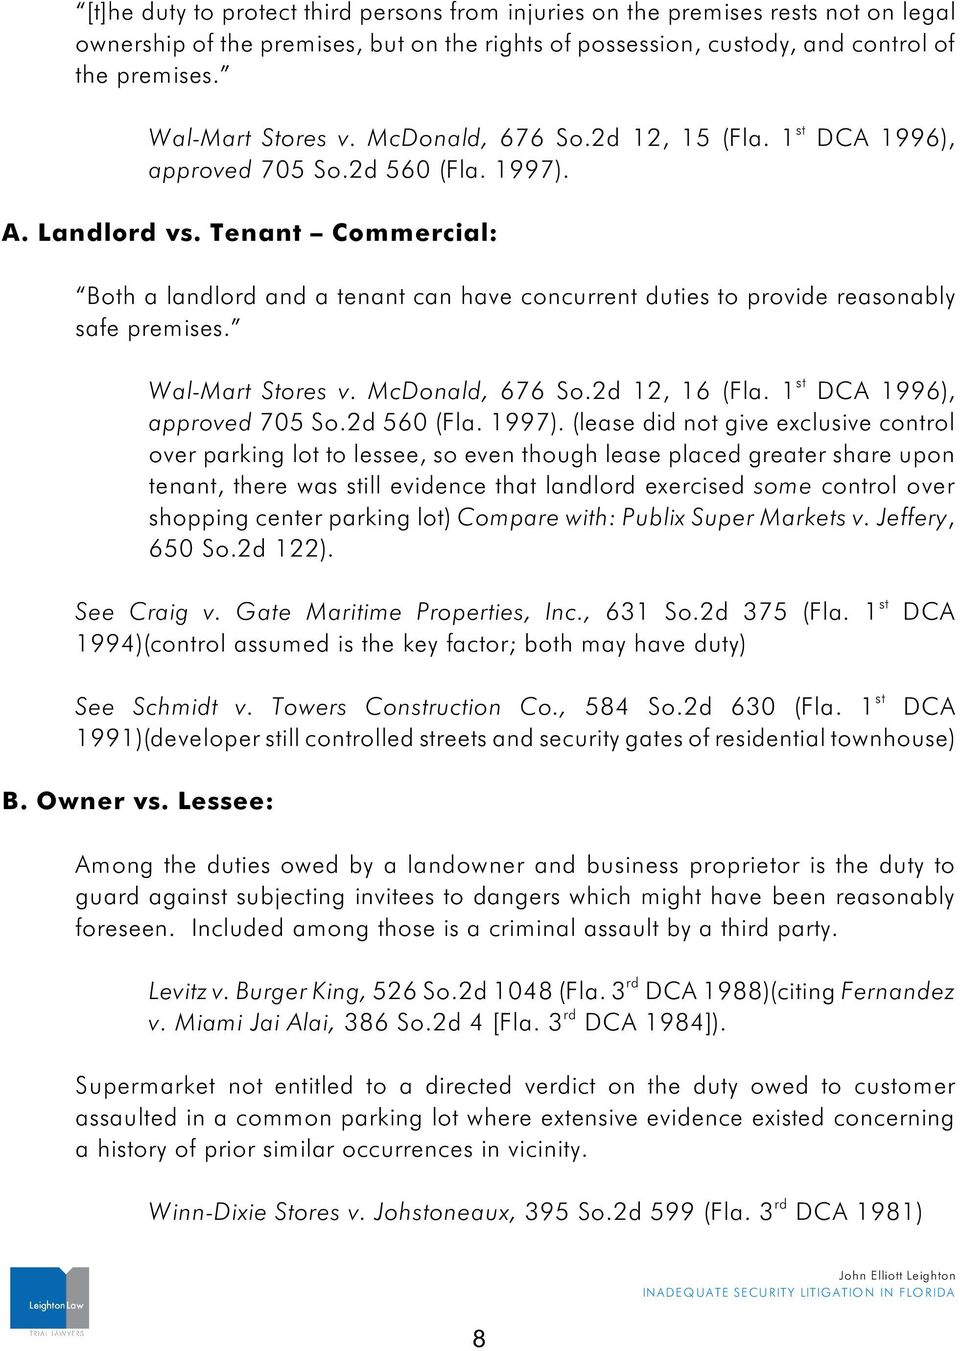 Tenant Commercial: Bo a landlo and a tenant can have concurrent duties to provide reasonably safe premises. Wal-Mart Stores v. McDonald, 676 So.2d 12, 16 (Fla. 1 DCA 1996), approved 705 So.